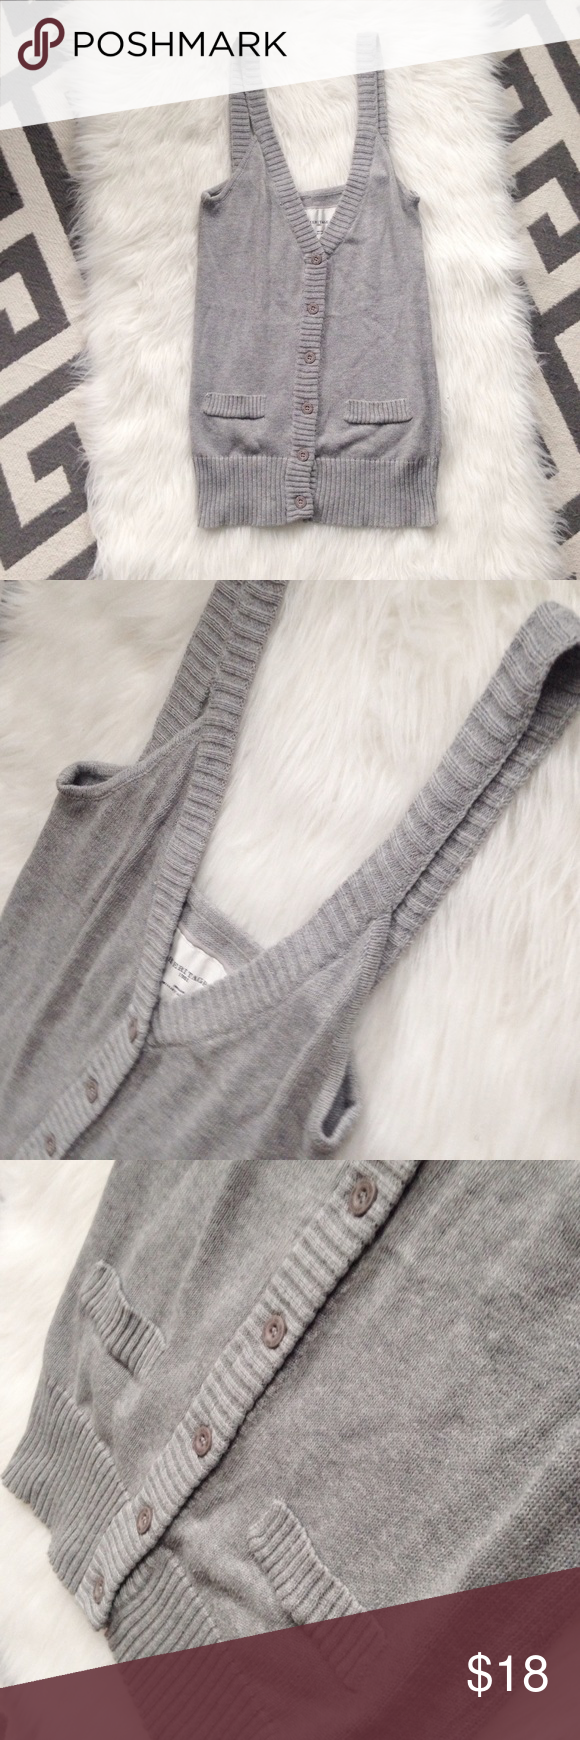 Heritage 1981 Top Gray sweater tank. Button front. Excellent condition. 💕 Heritage 1981 Tops Tank Tops